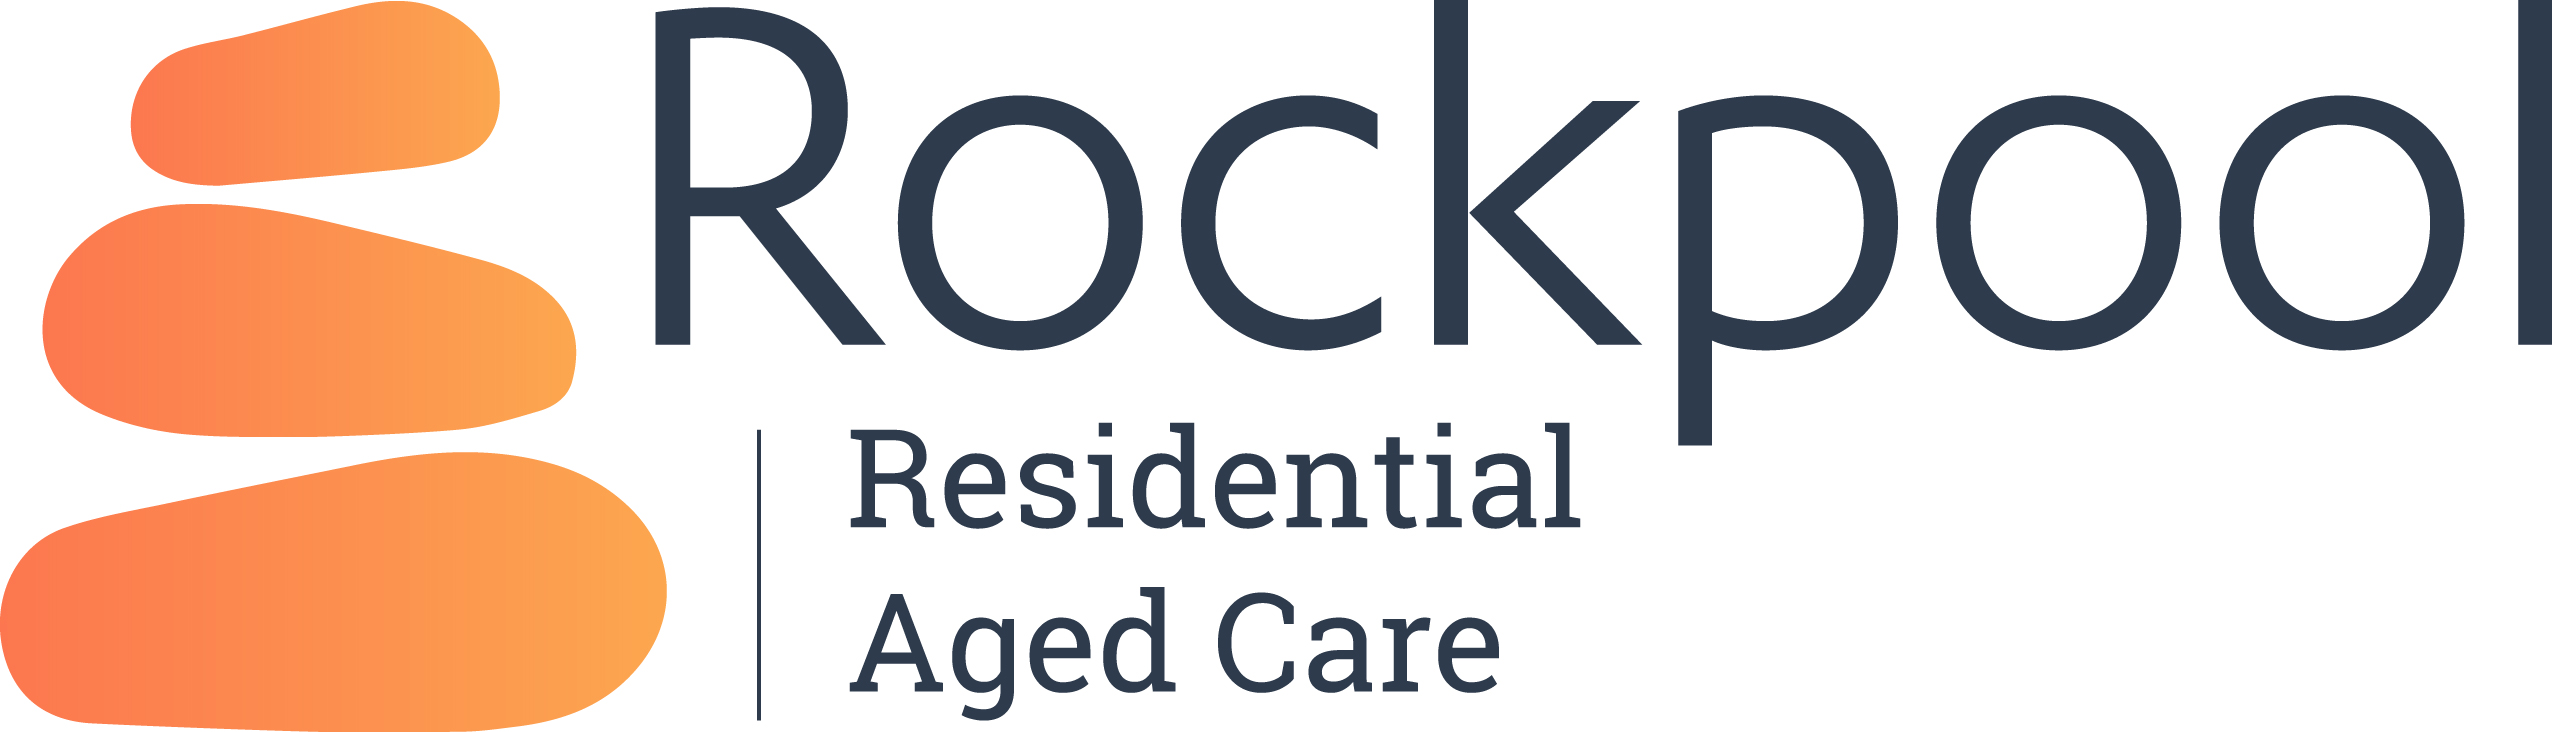 Rockpool Residential Aged Care